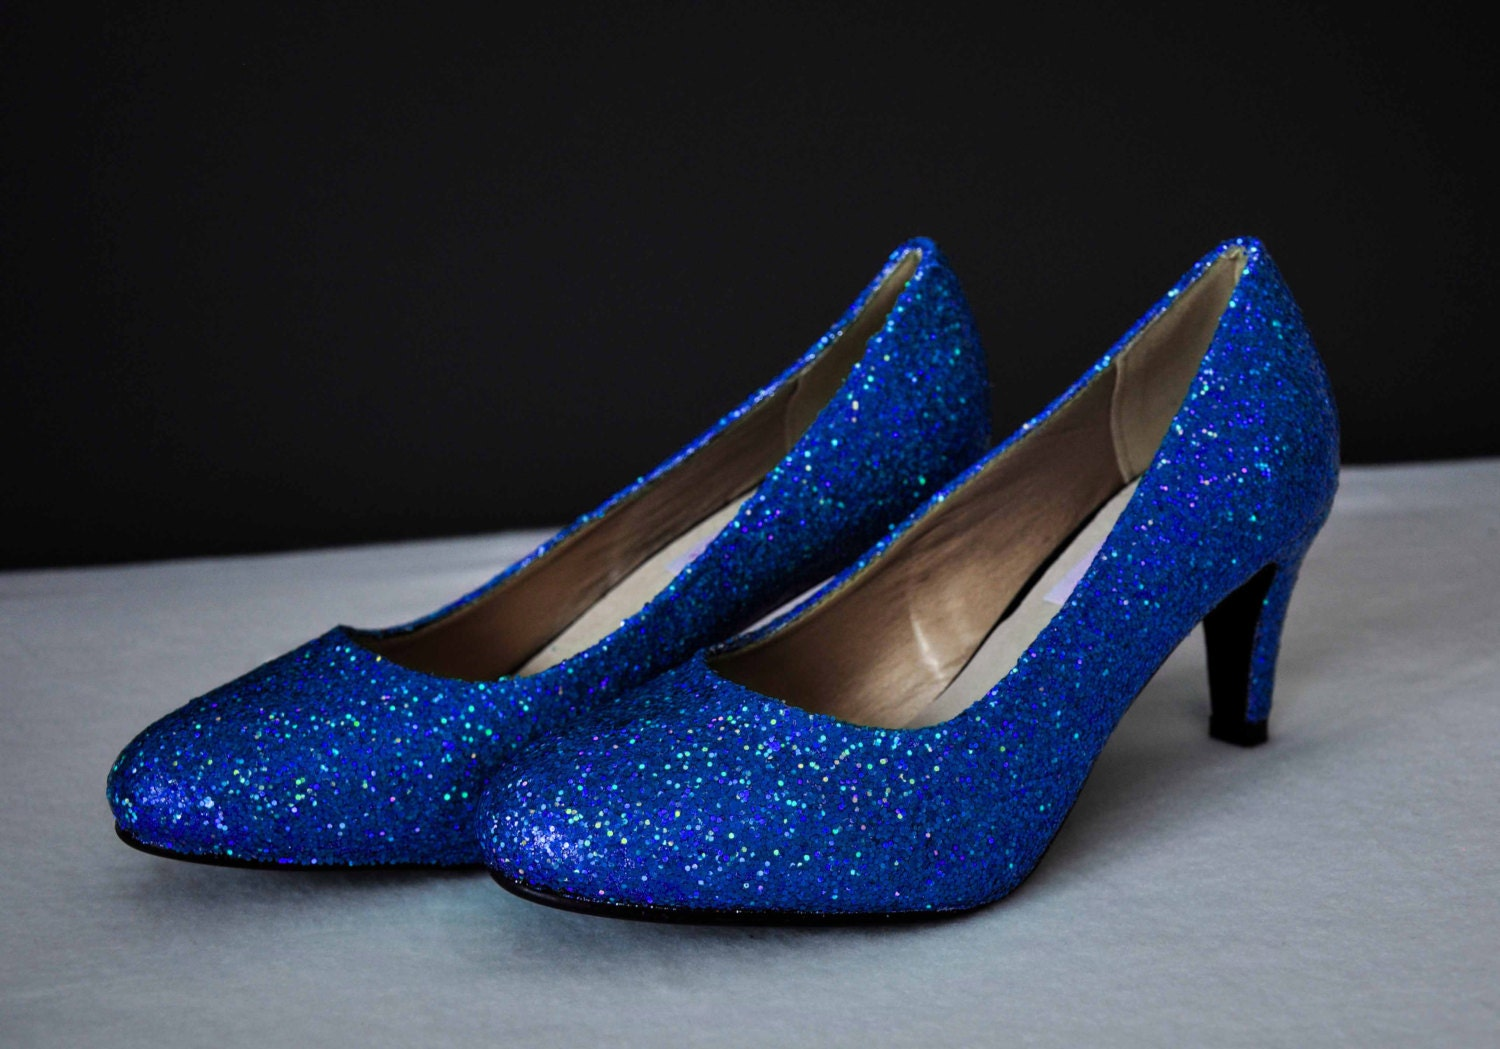 Royal Blue And Silver Heels - Is Heel